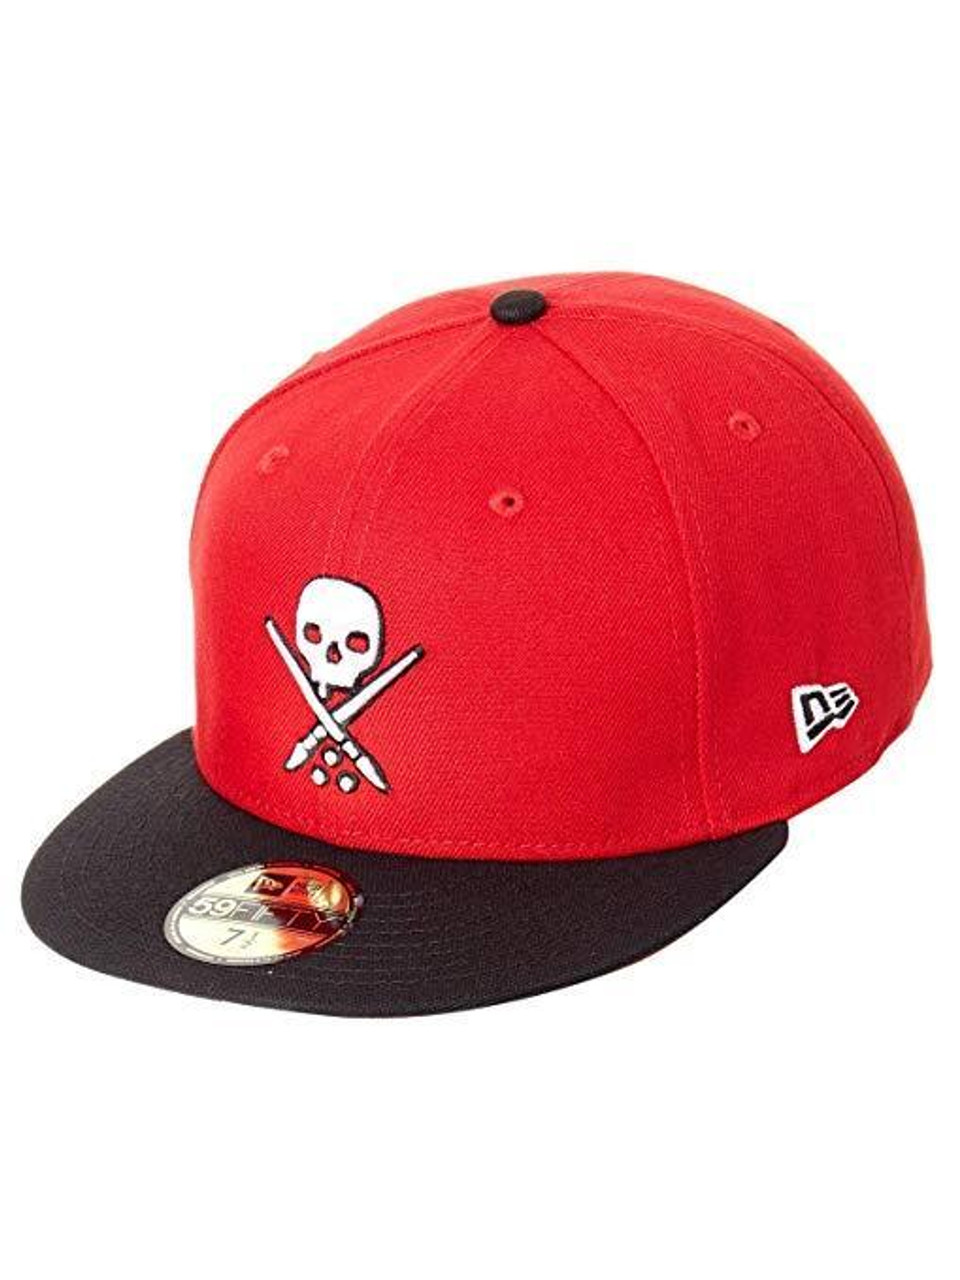 Sullen Clothing New Era Eternal Fitted Red Snapback Cap Hat SCA2023 -  Fearless Apparel c6d15f8ba18f